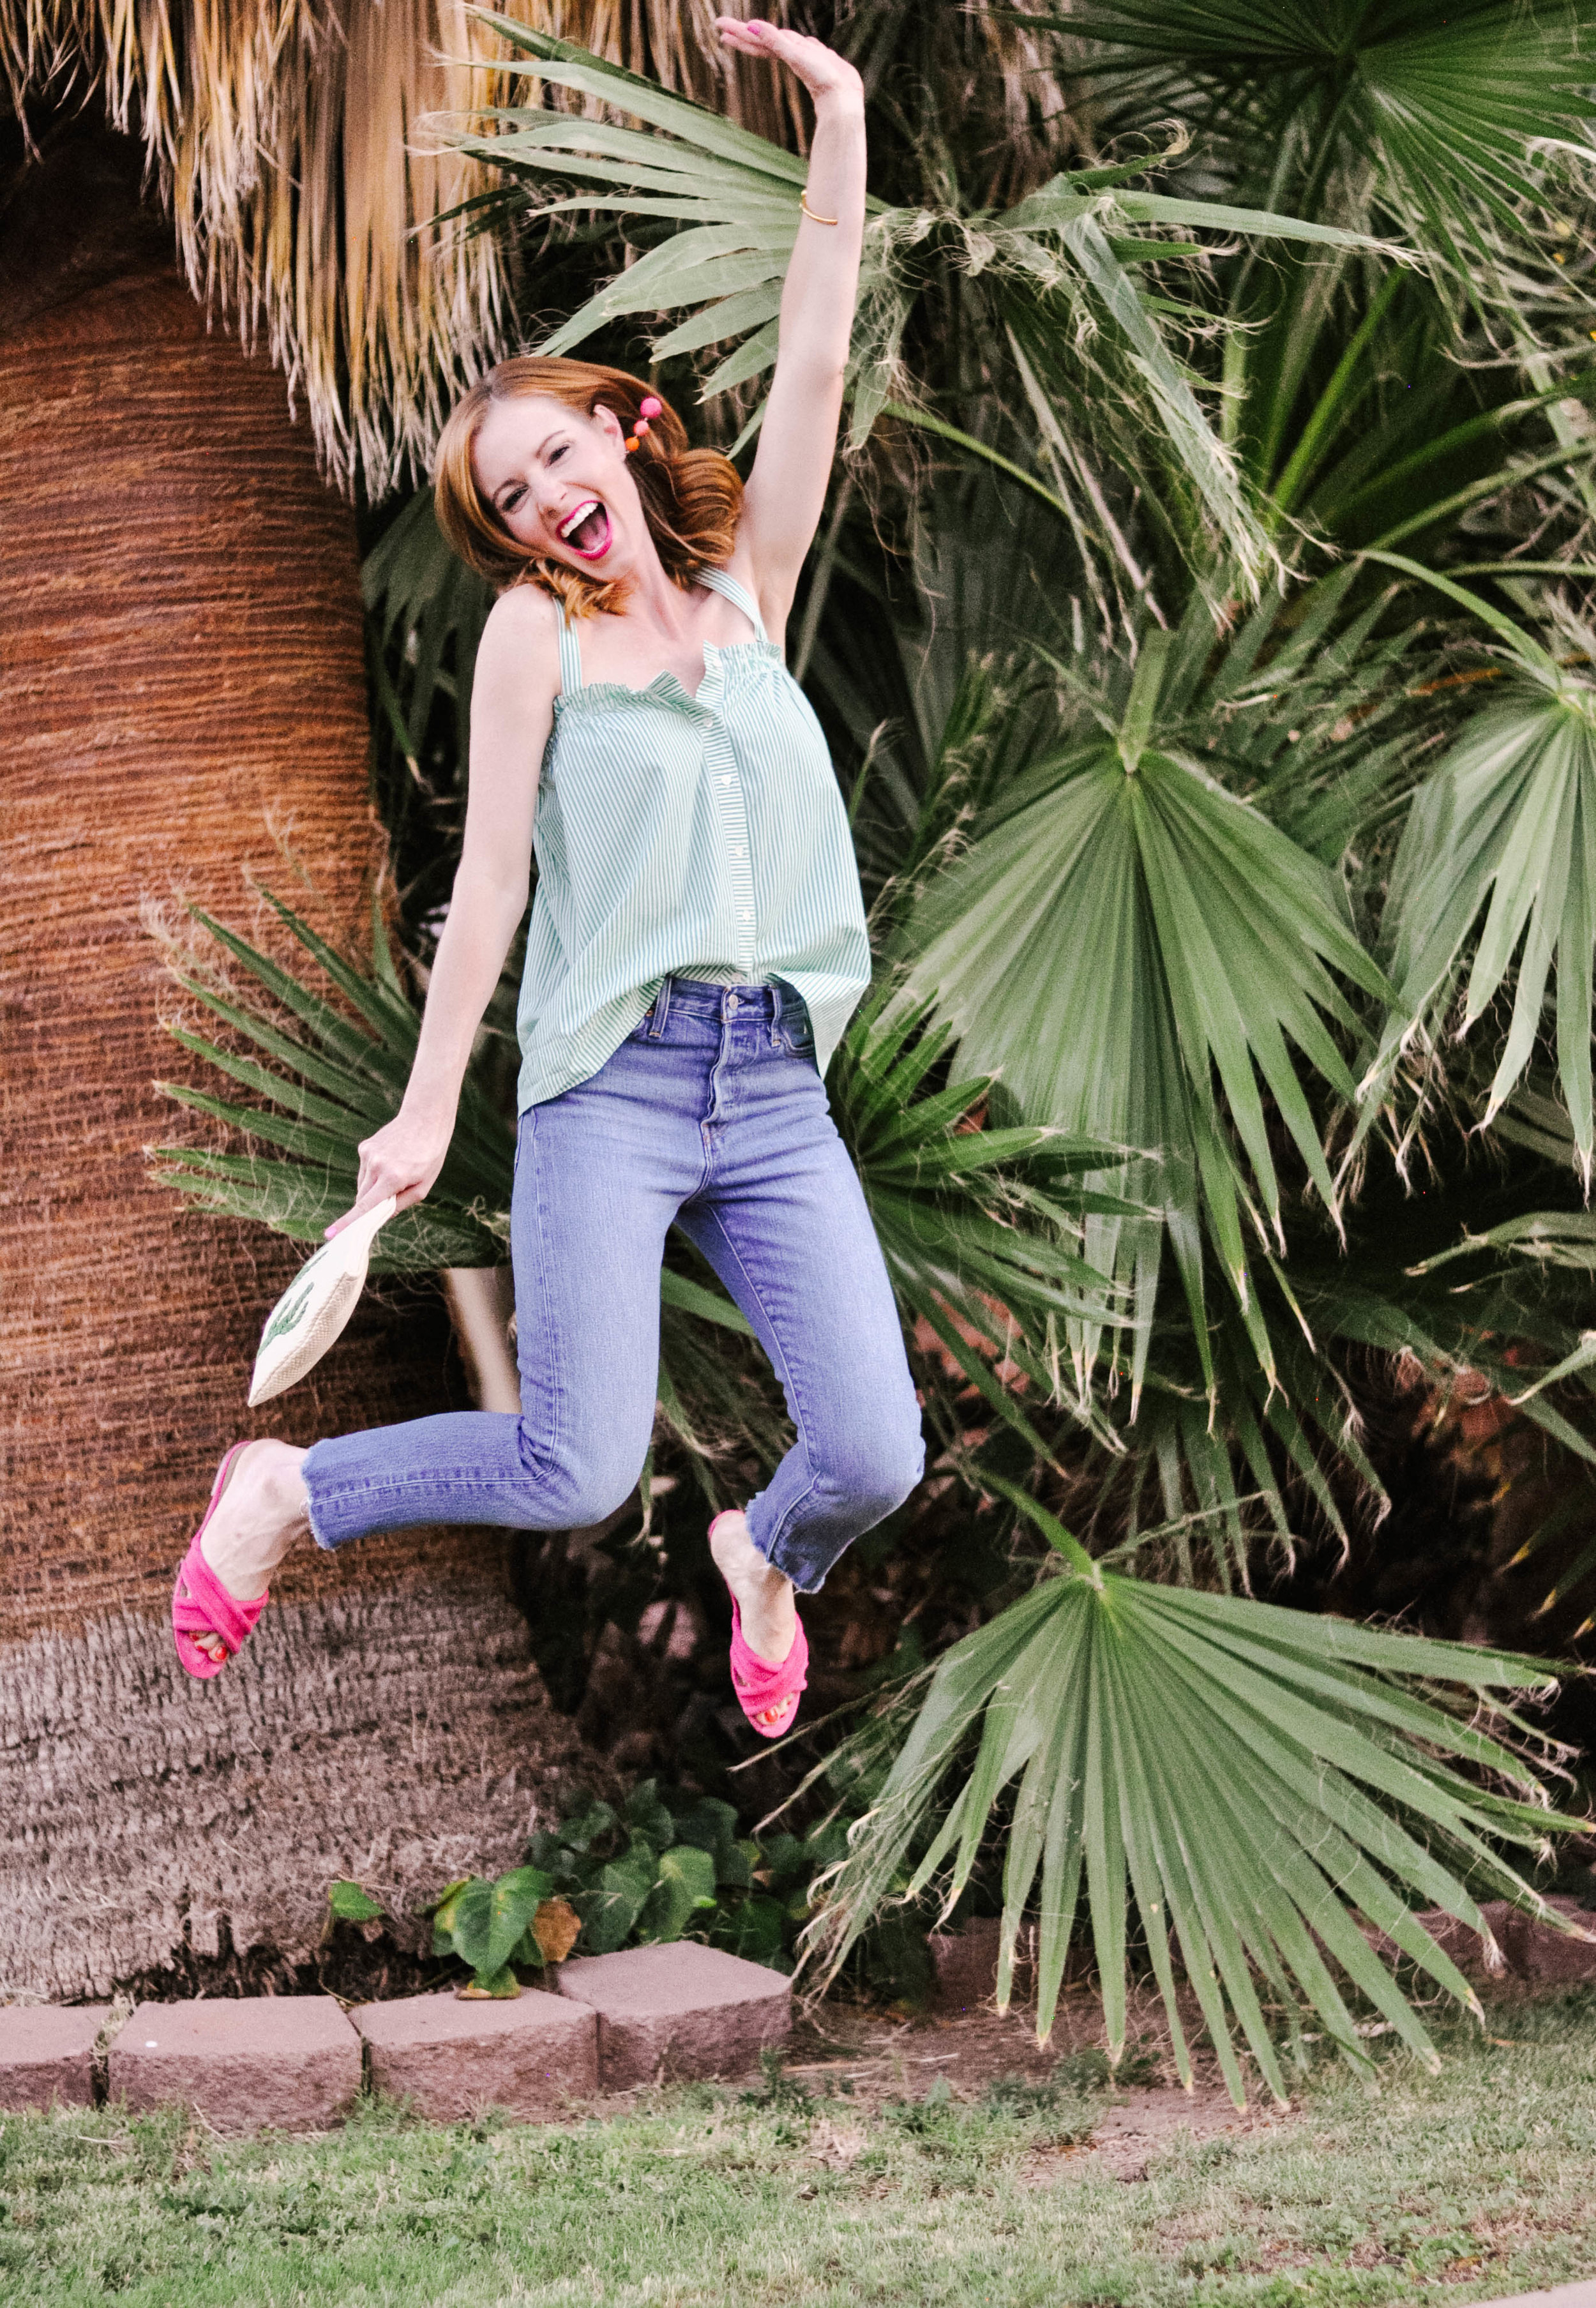 Woman Jumping in Casual Summer Outfit